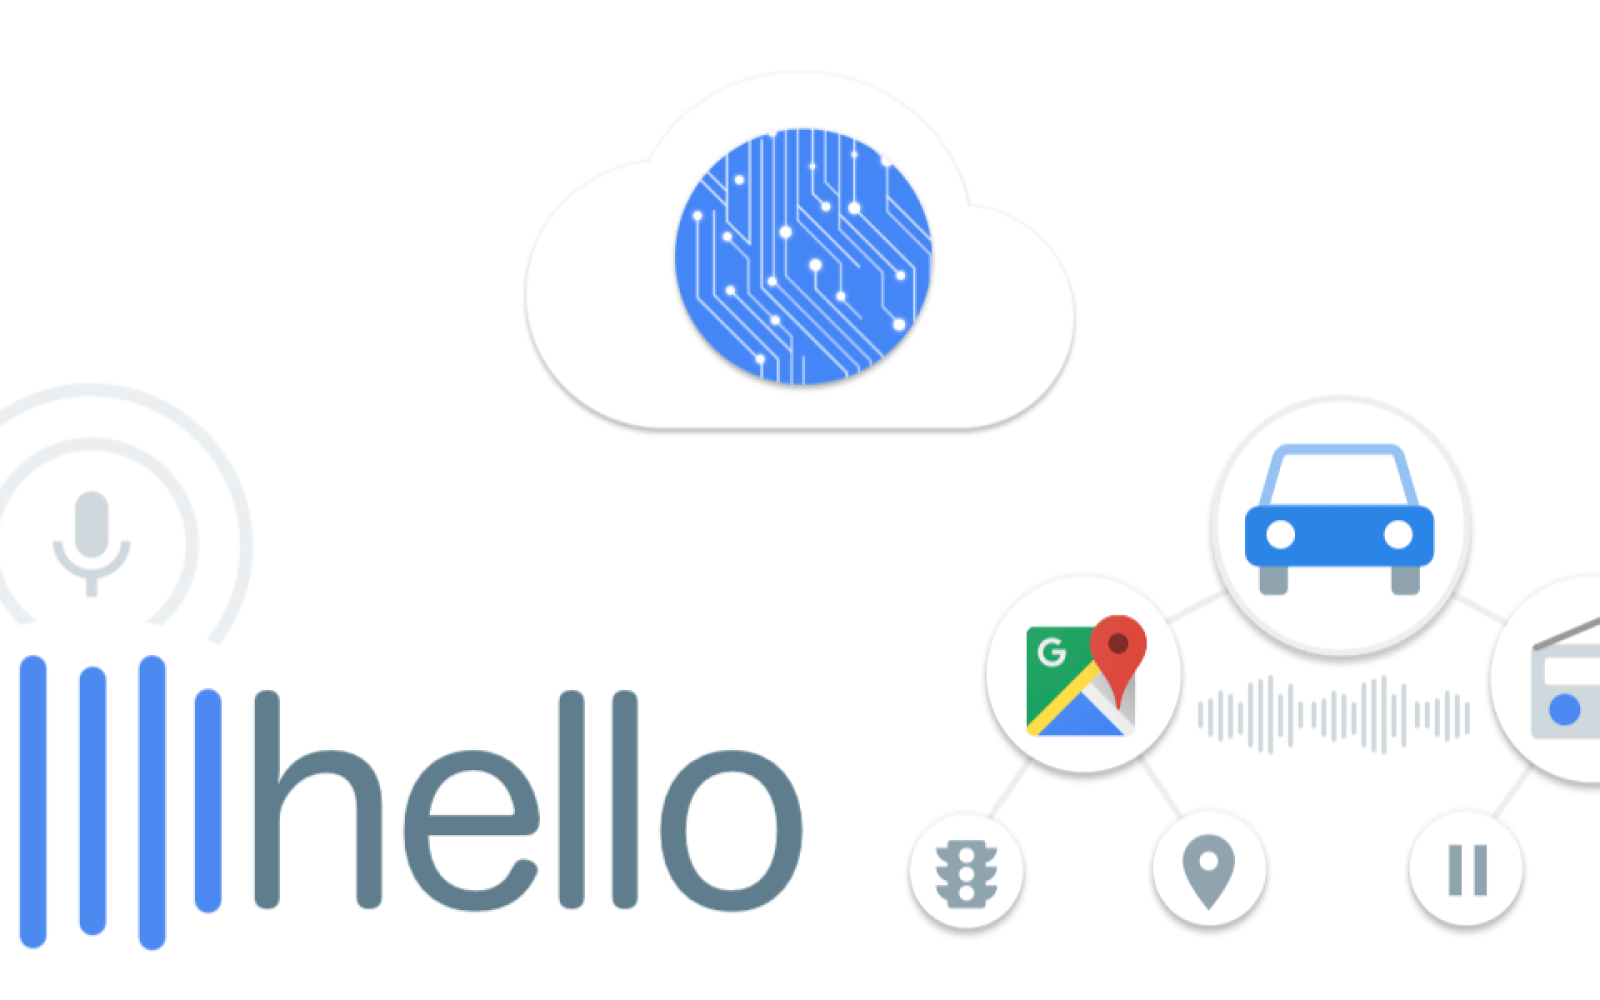 Developers now have access to Google Assistant's speech